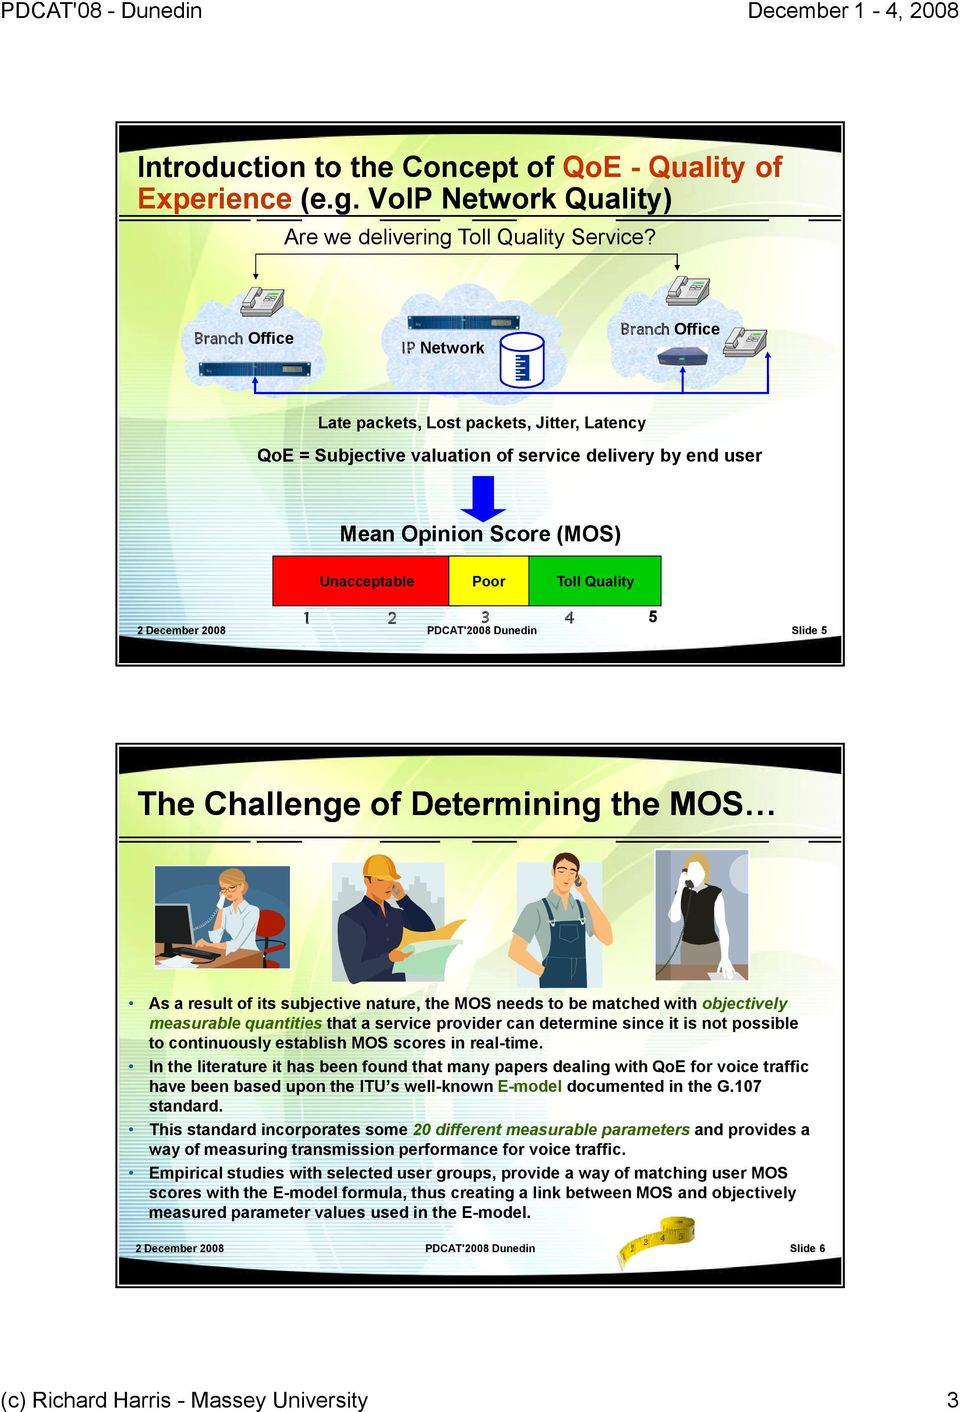 2 3 PDCAT'2008 Dunedin Slide 5 4 5 The Challenge of Determining the MOS As a result of its subjective nature, the MOS needs to be matched with objectively measurable quantities that a service